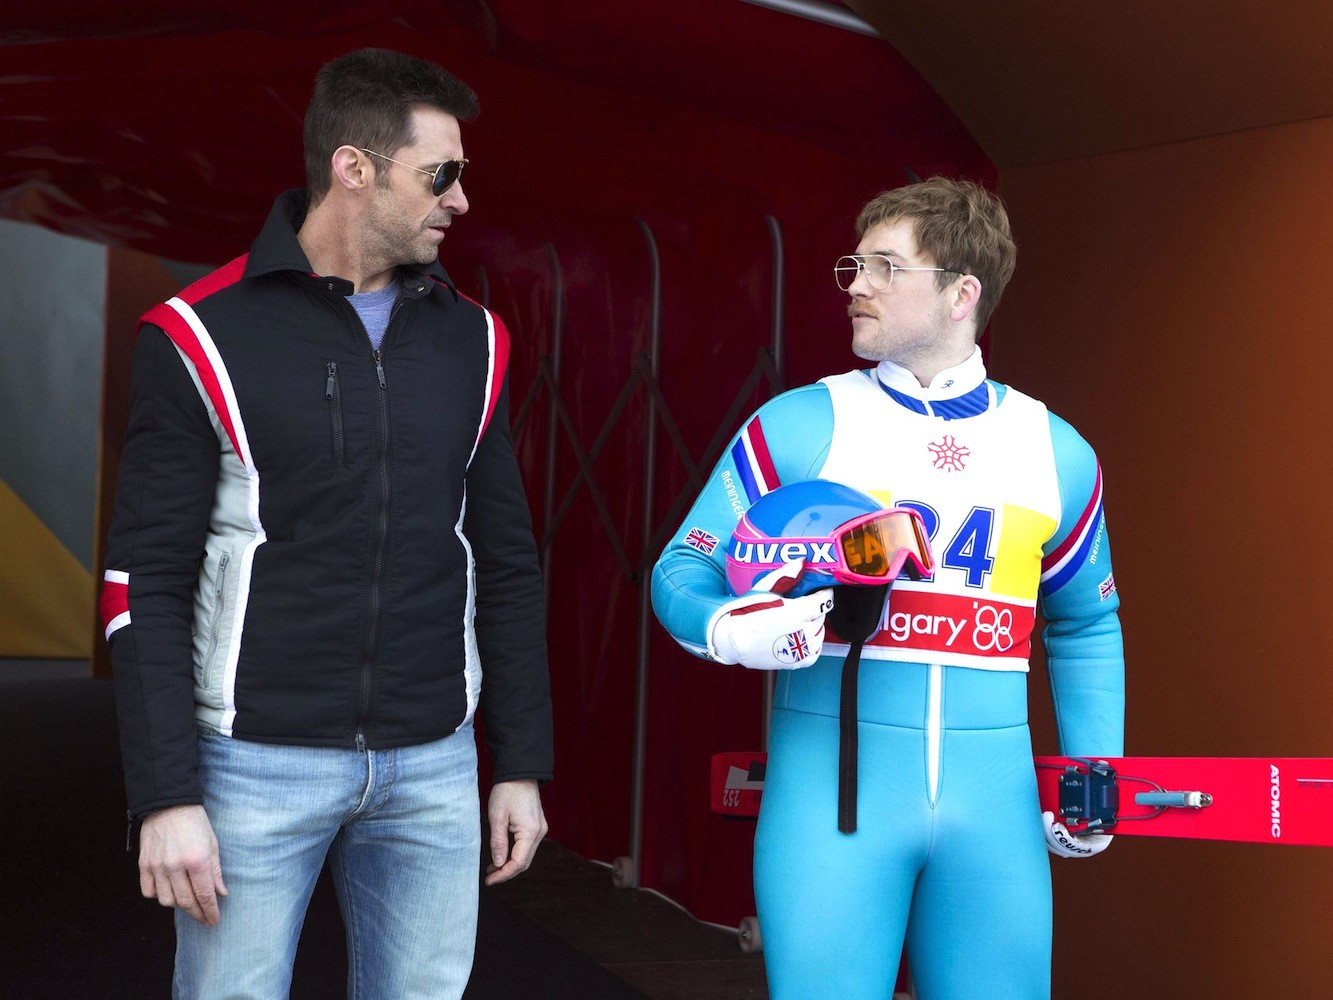 Hugh Jackman & Taron Egerton - Eddie The Eagle (2016)